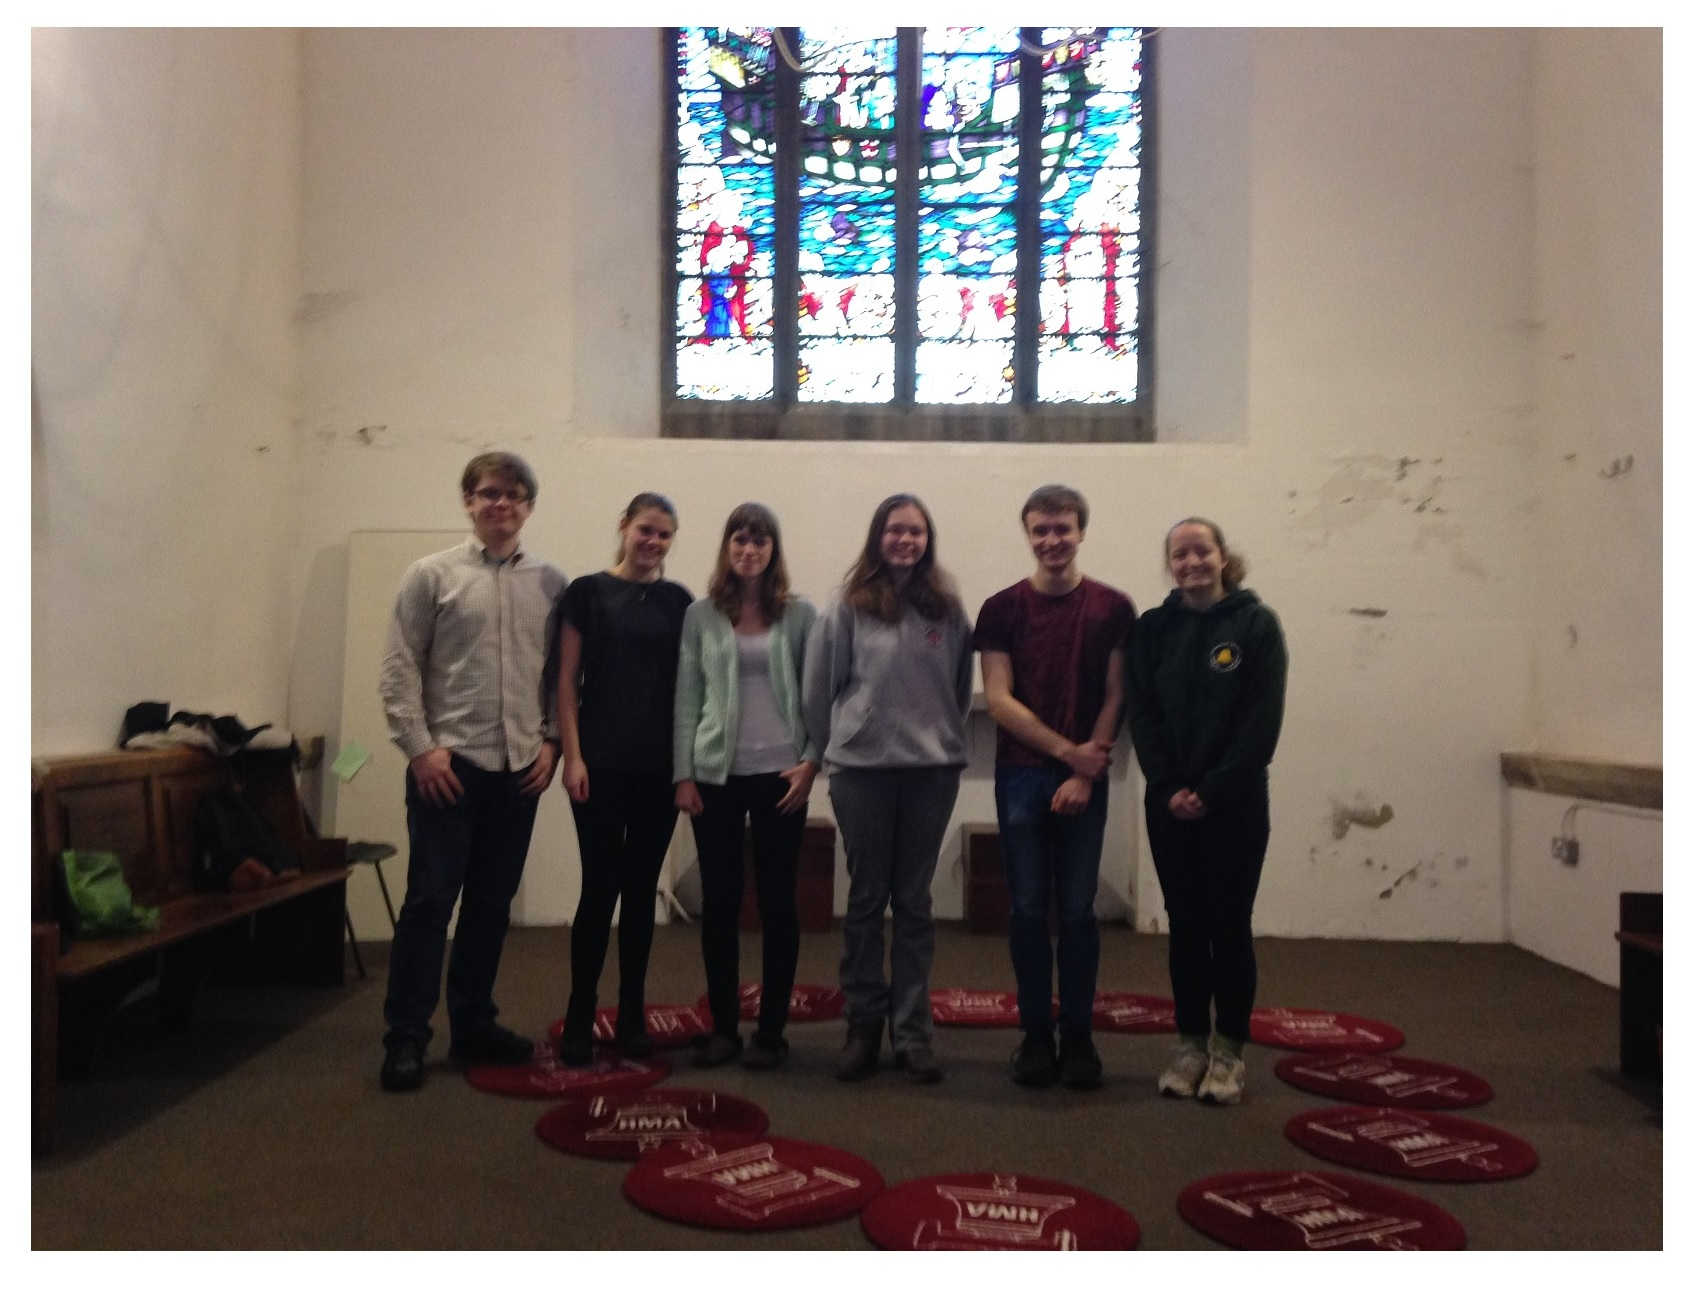 Current Members Peal Band l-r Max, Kate, Lorna, Alice, Phil and Libby